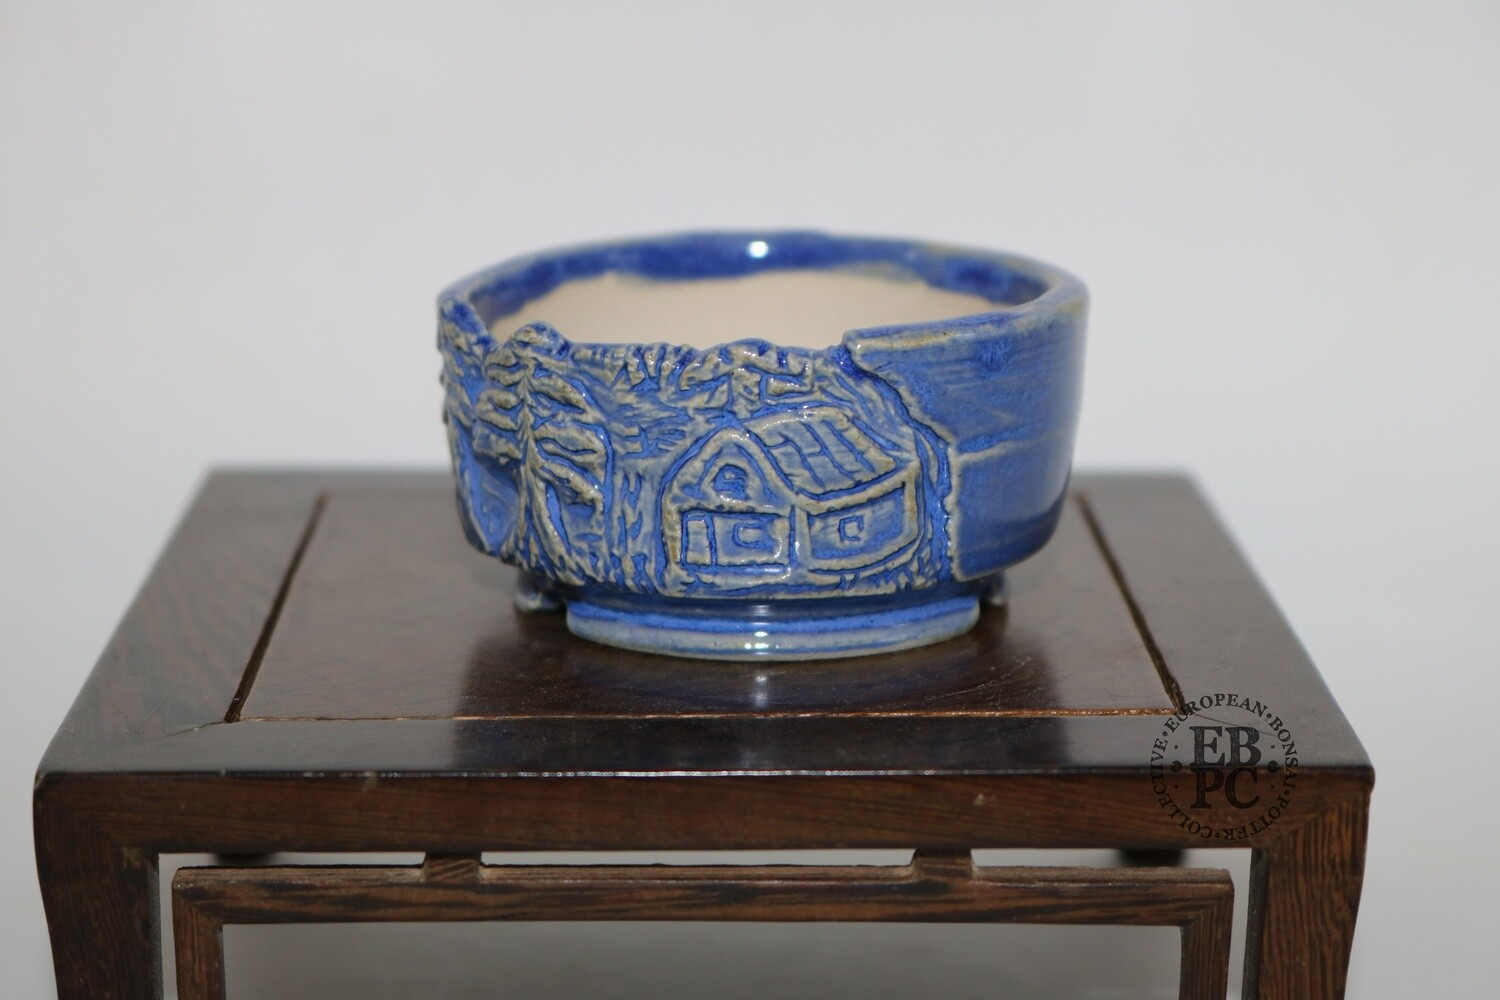 Terre en Vadrouille - 7.1cm; Mame /Shohin /Accent; Round; Glazed; Carved Landscapes In Relief; Blue; Cream;